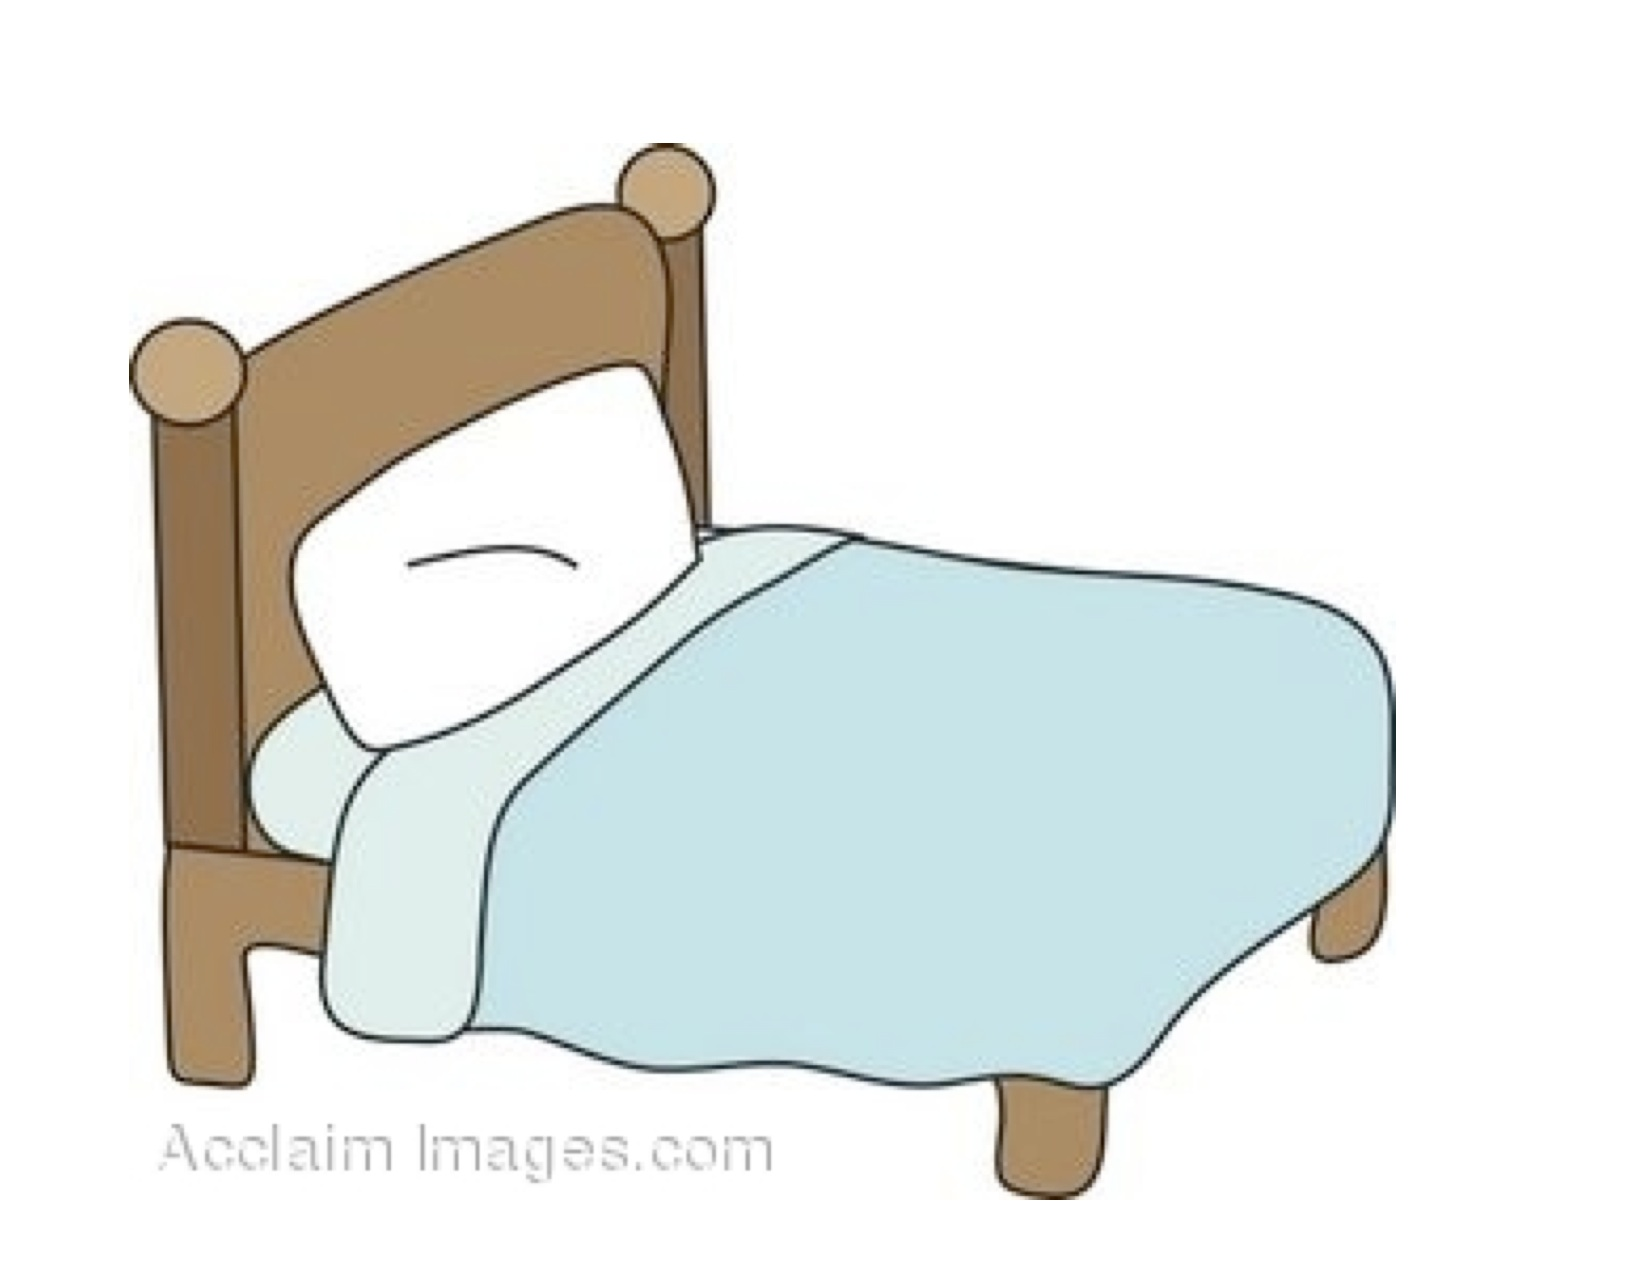 Bed cartoon clip art dromgbg  - Bed Clipart